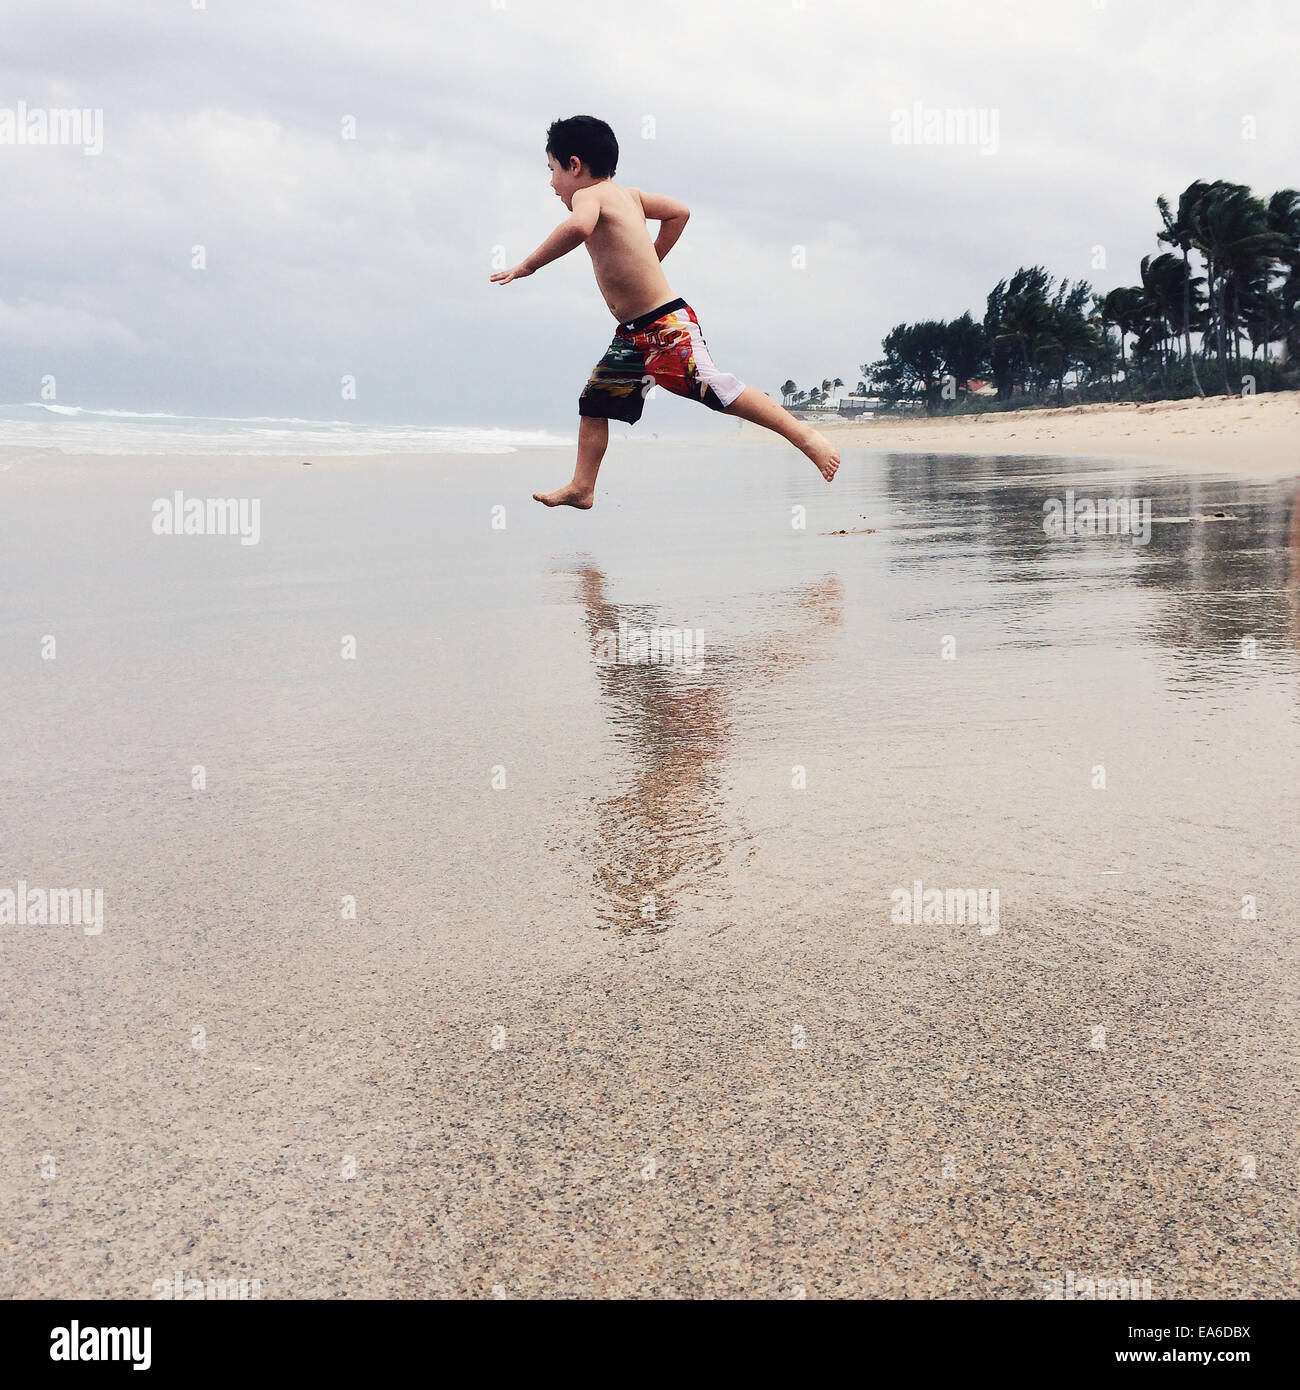 USA, Florida, Palm Beach County, West Palm Beach Boy (2-3) laufen am Strand Stockbild